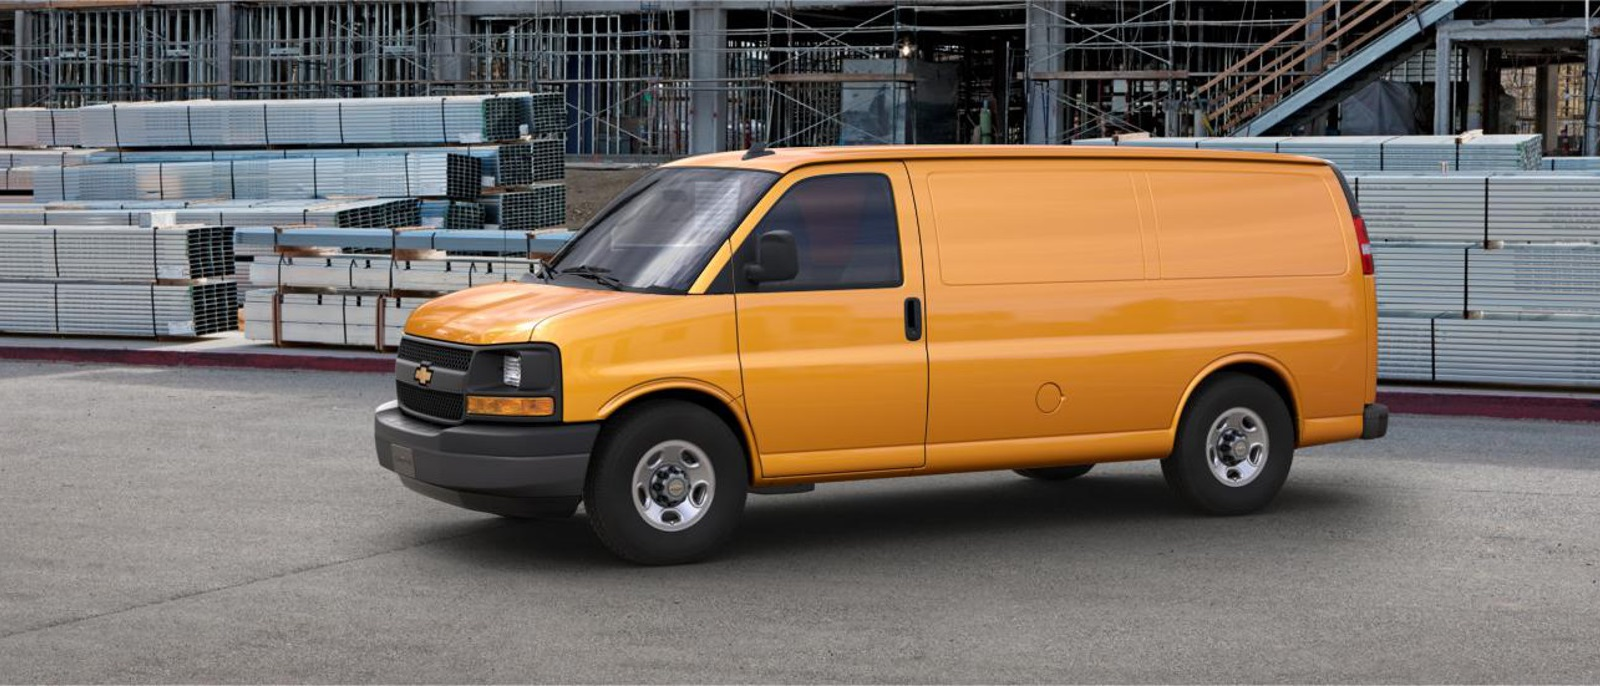 2016 Chevy Express 2500 Profile Yellow